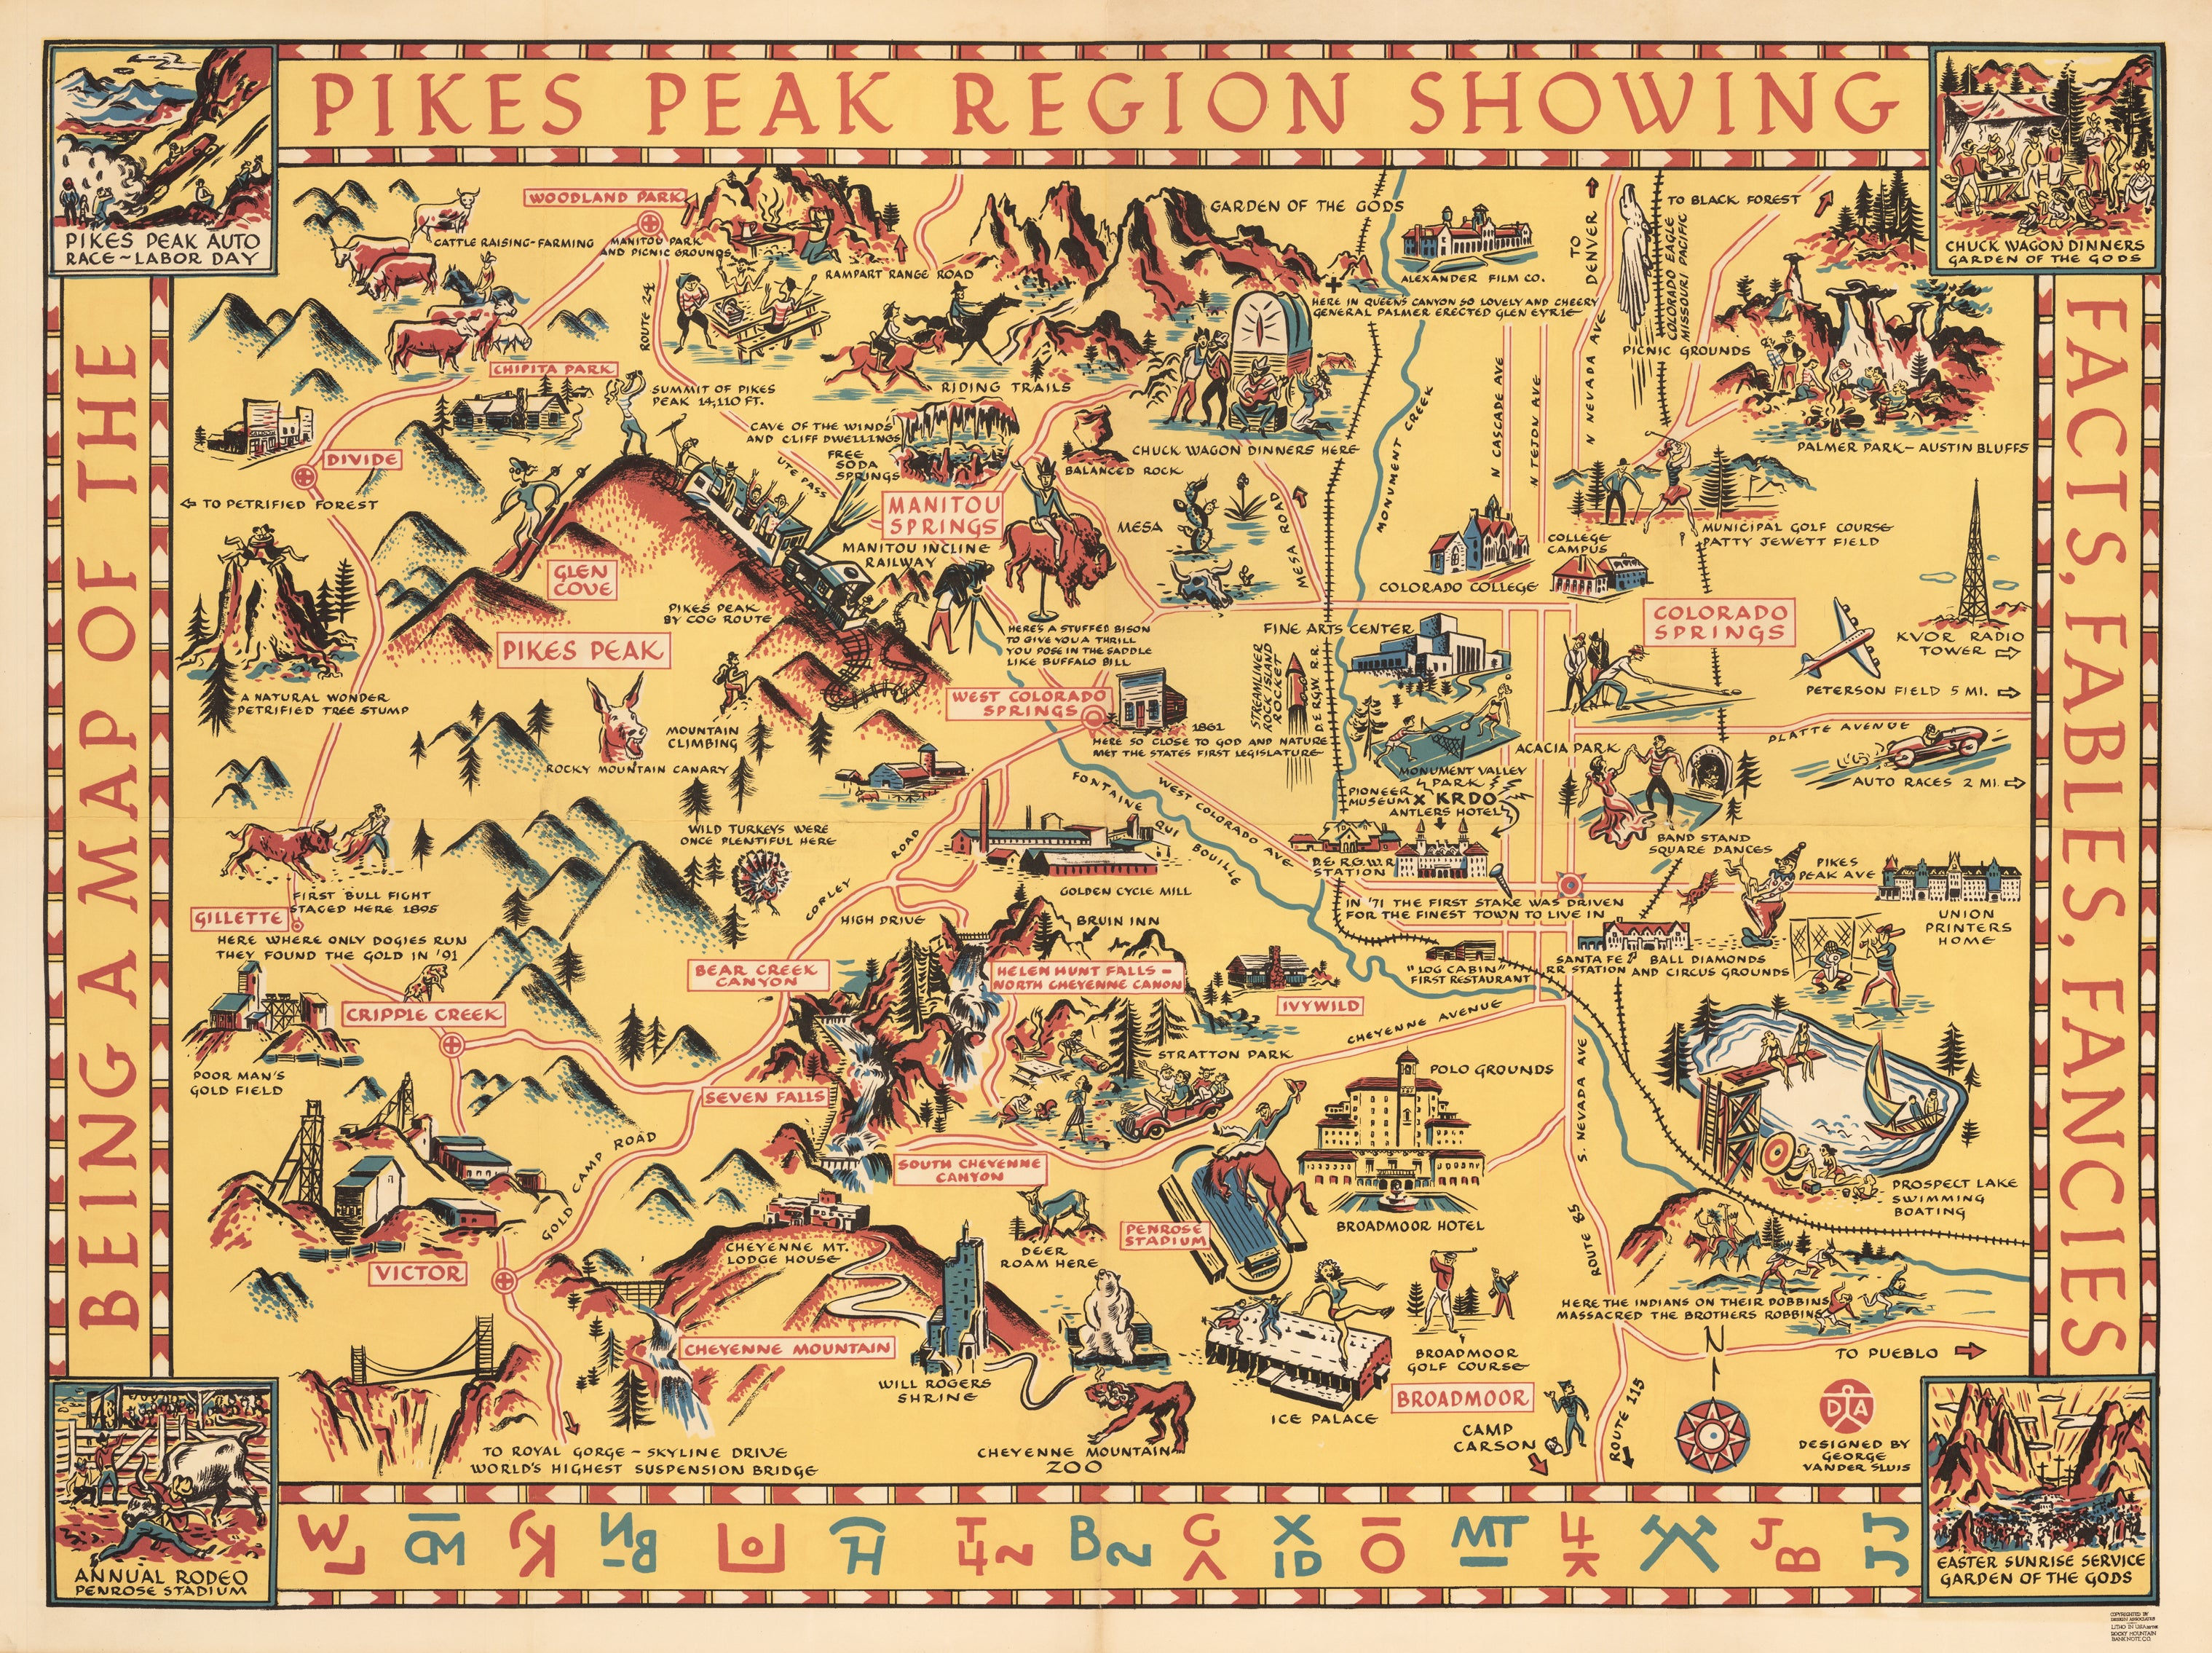 Being a Map of the Pikes Peak Region Showing Facts, Fables, Fancies